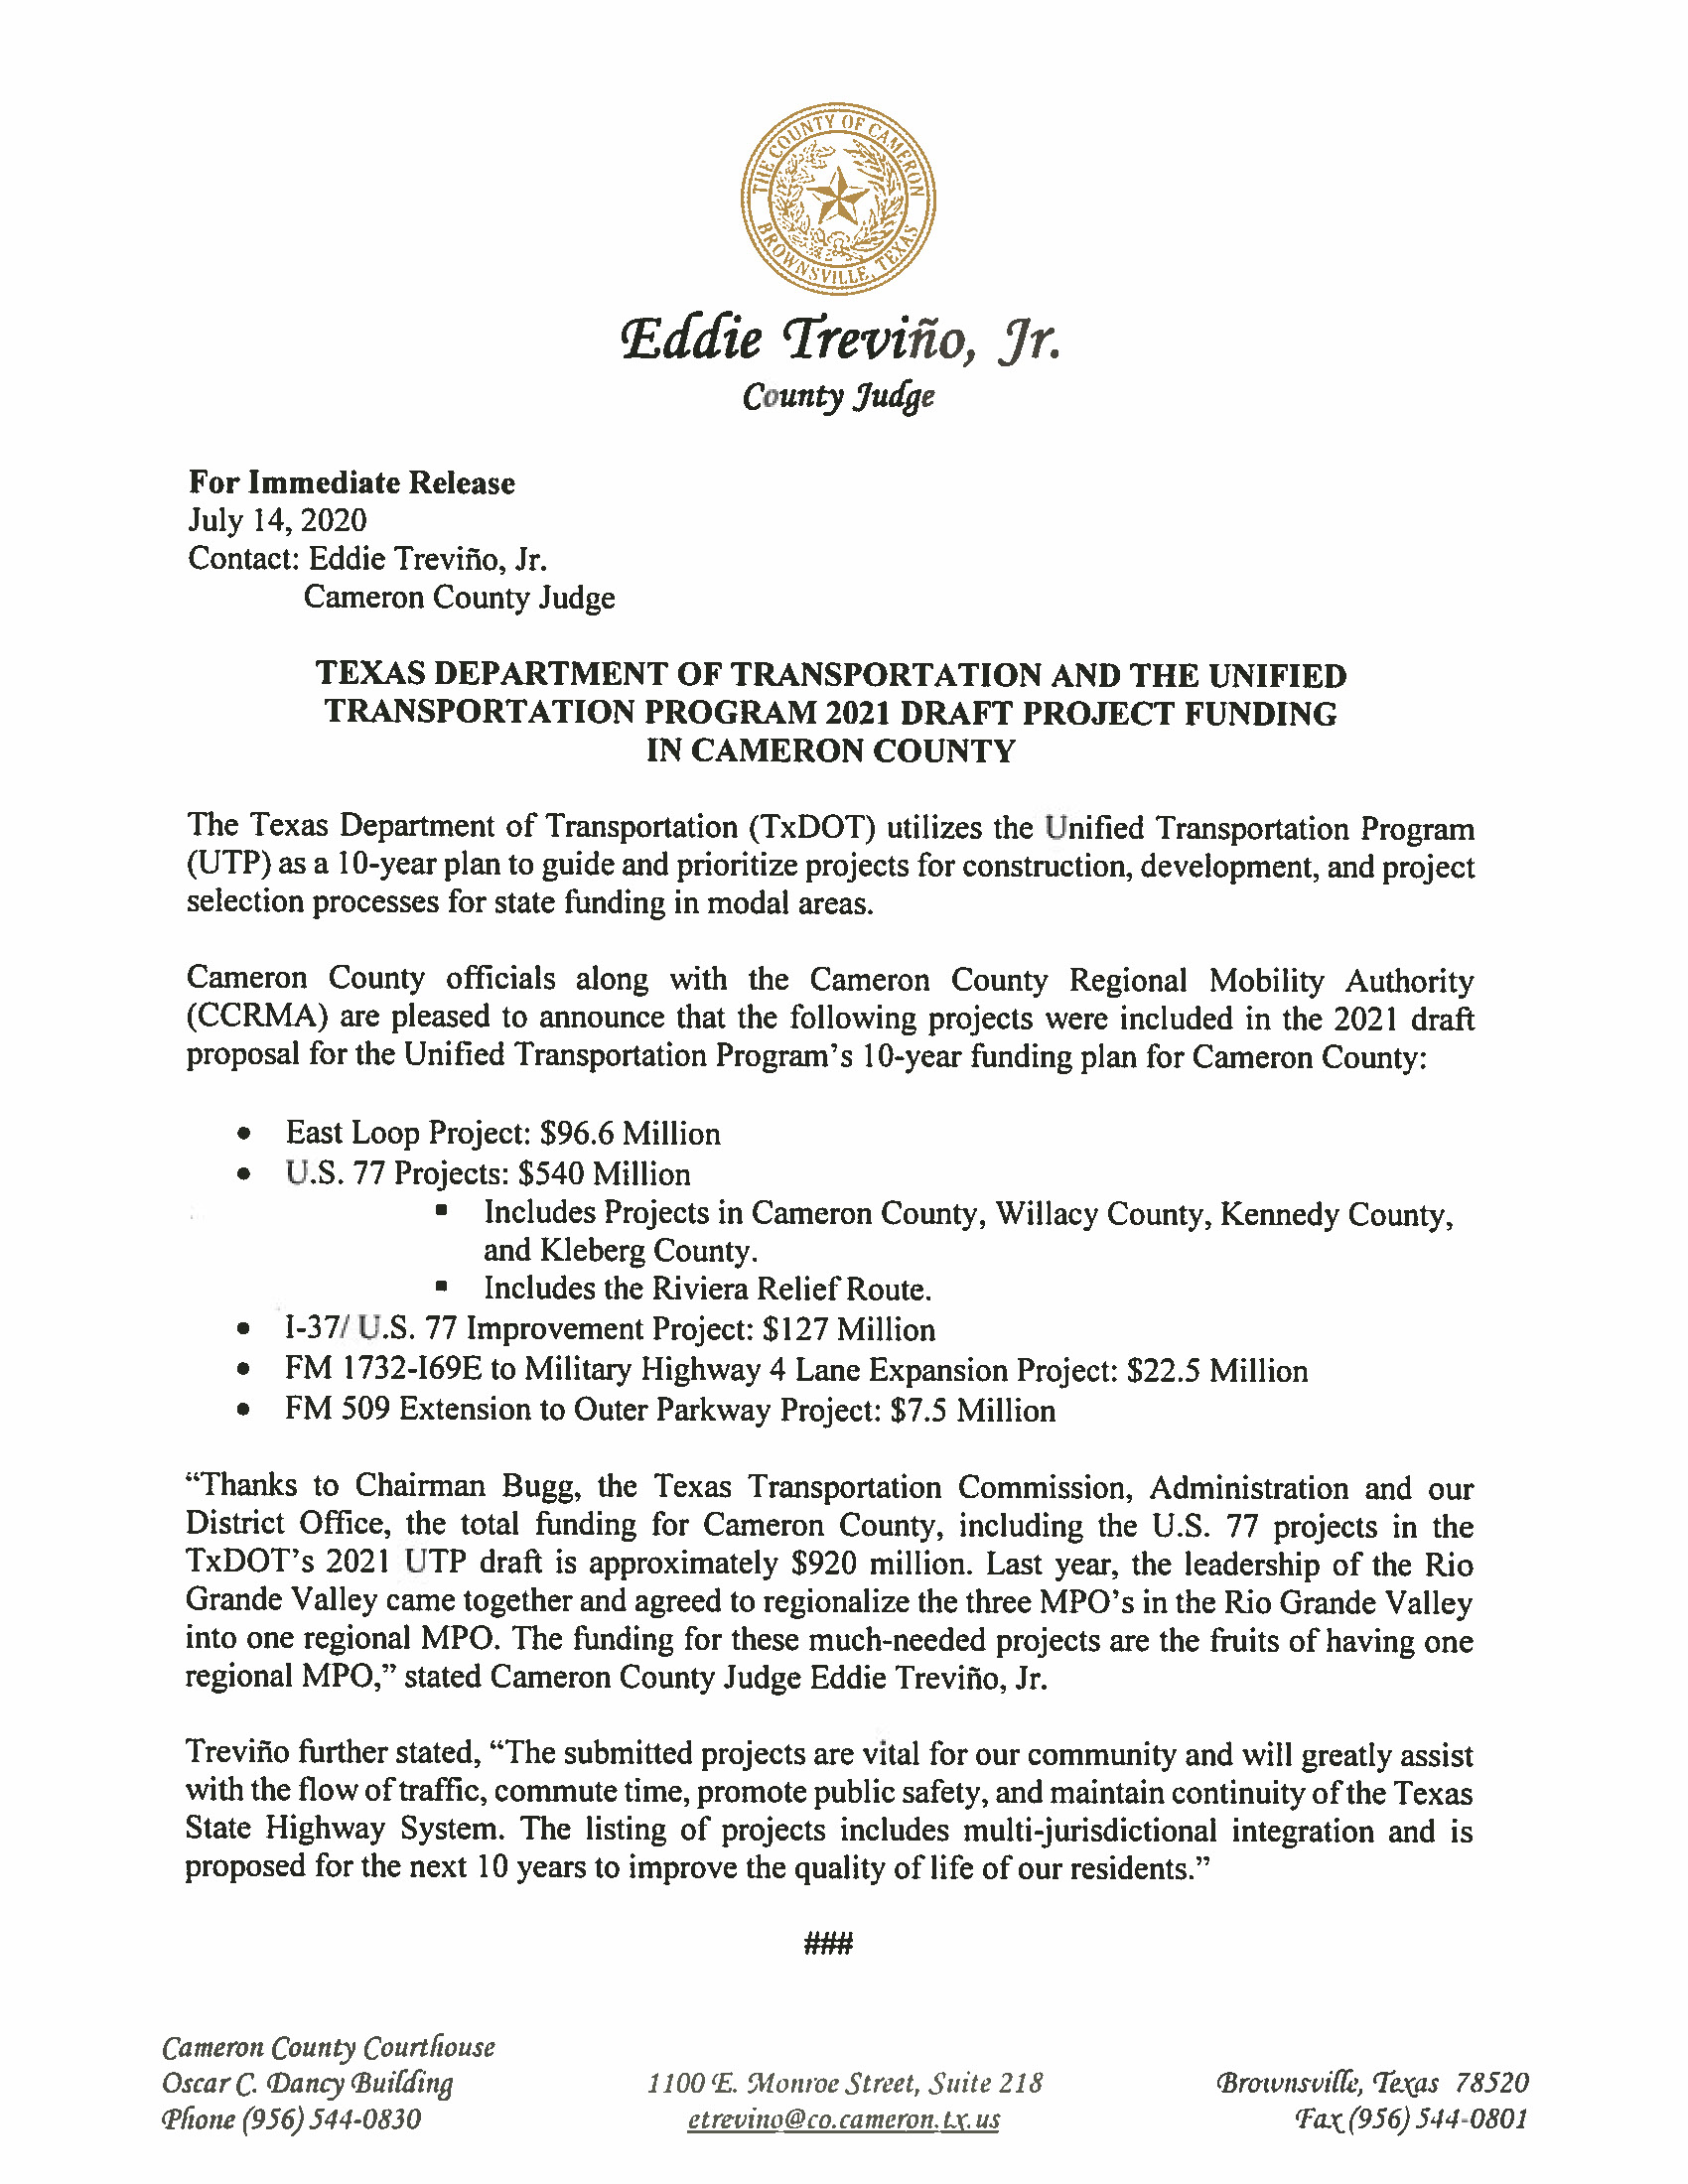 07.14.2020 Texas Department Of Transportation And The Unified Transportation Program 2021 Draft Project Funding In Cameron County